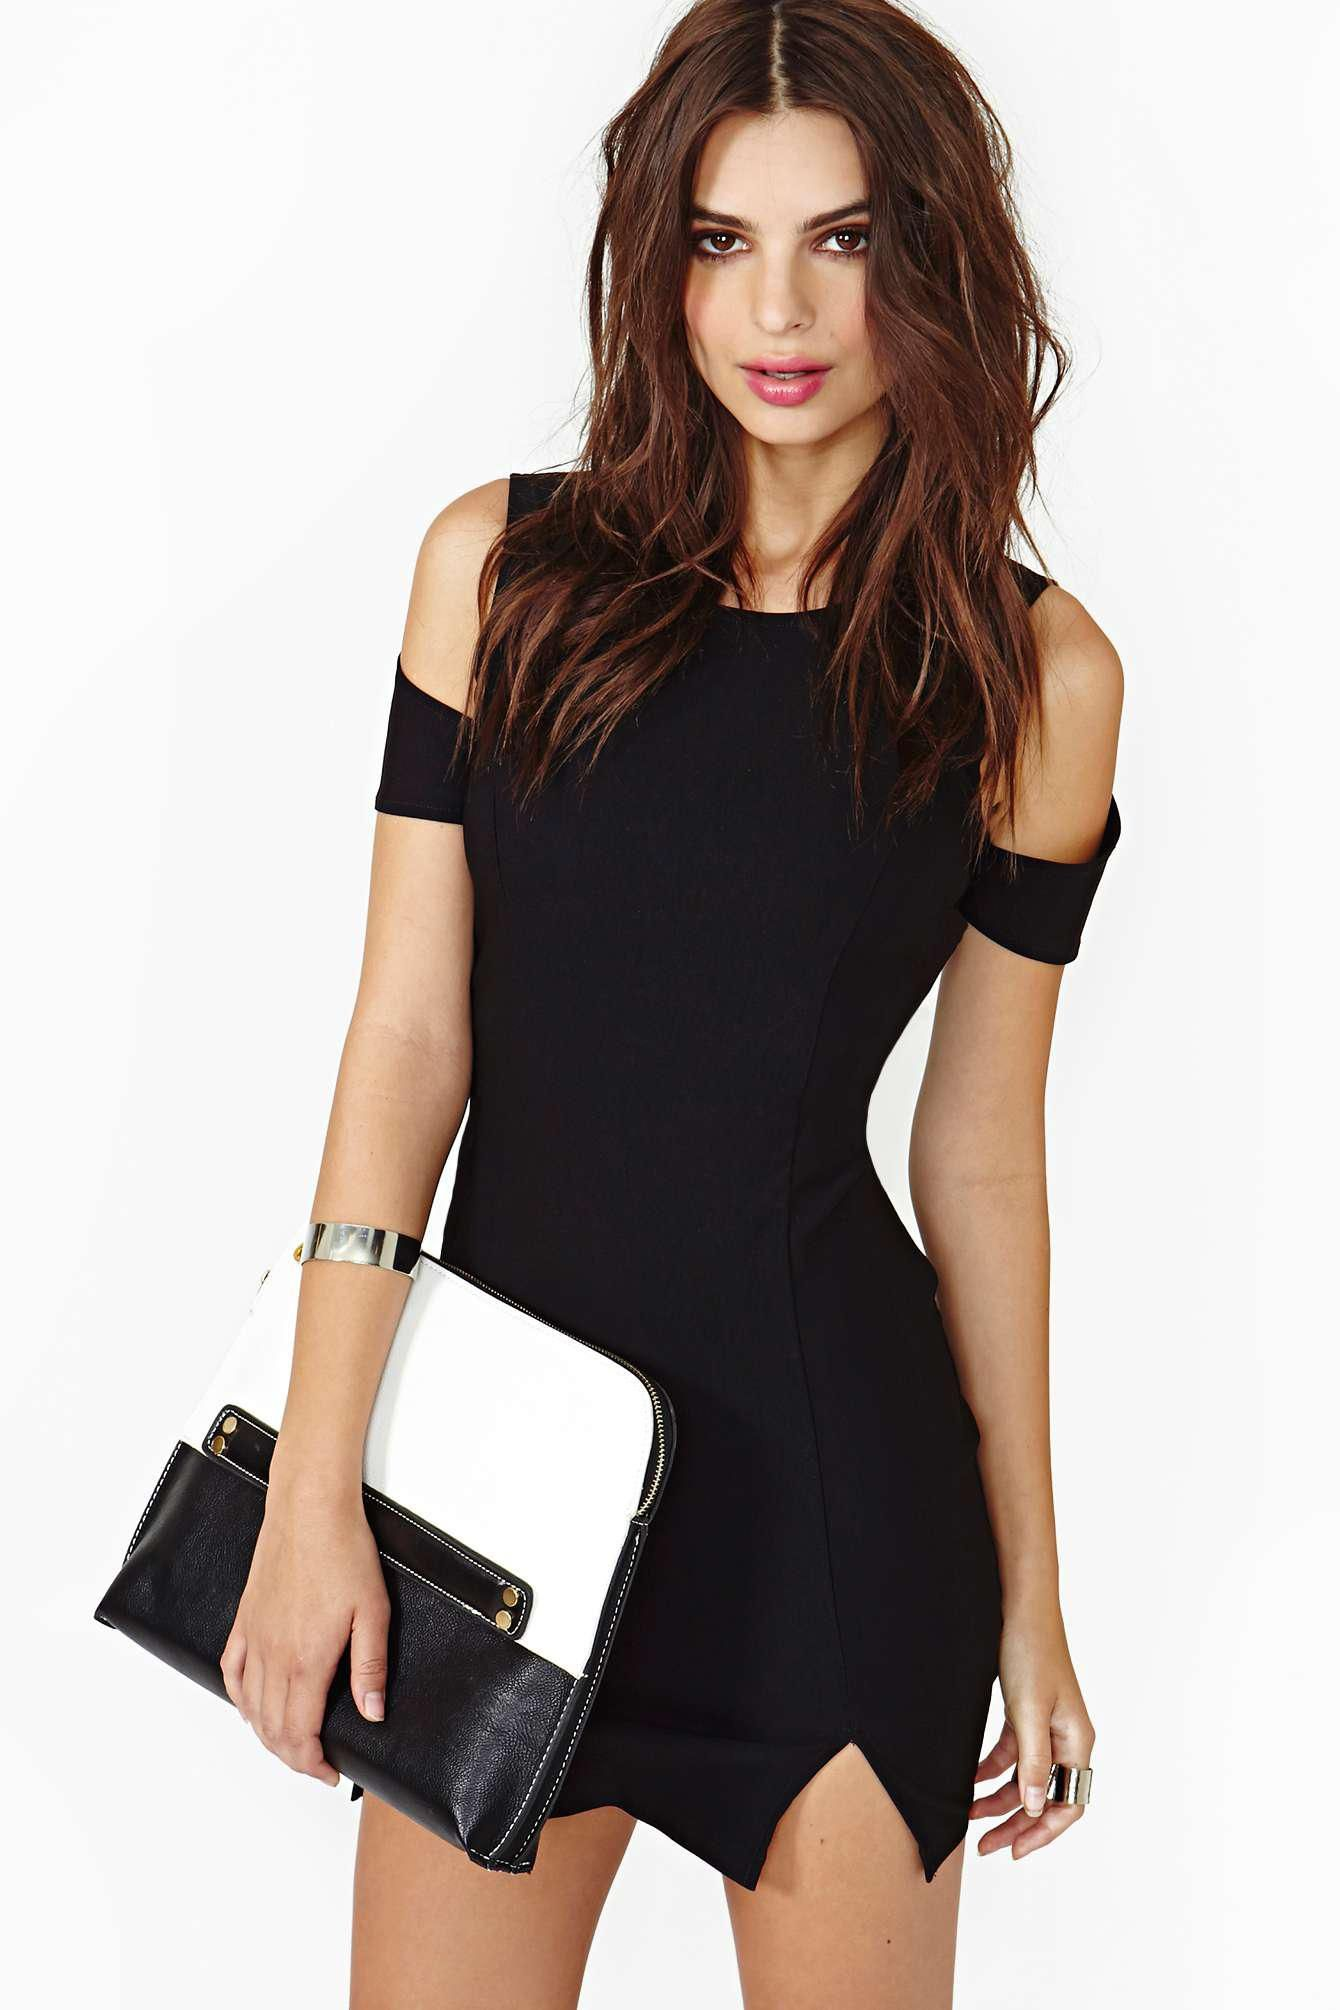 Turn up the heat in this killer black bodycon with cutout shoulders